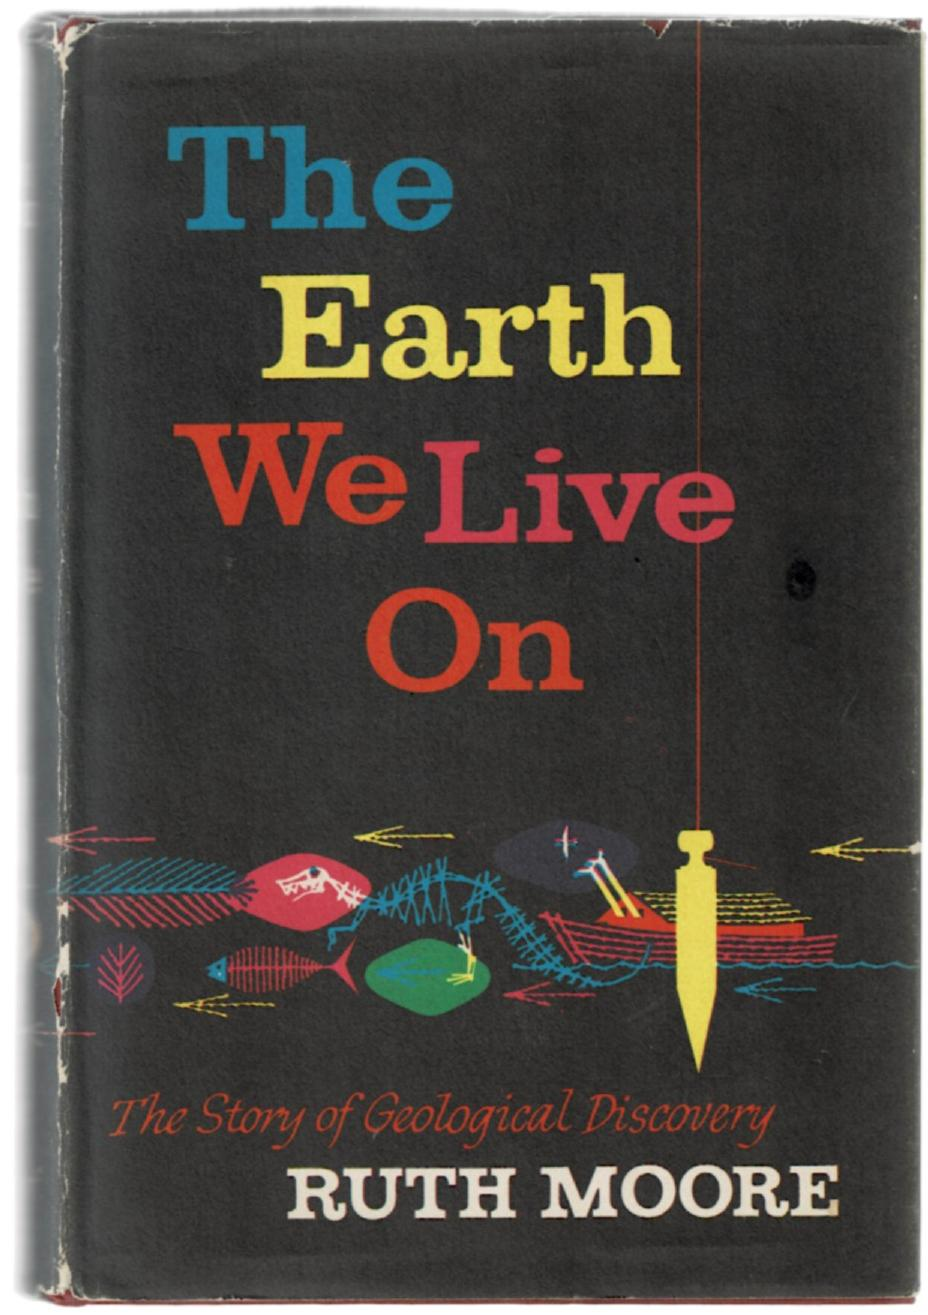 Image for The Earth We Live On: The Story of Geological Discovery